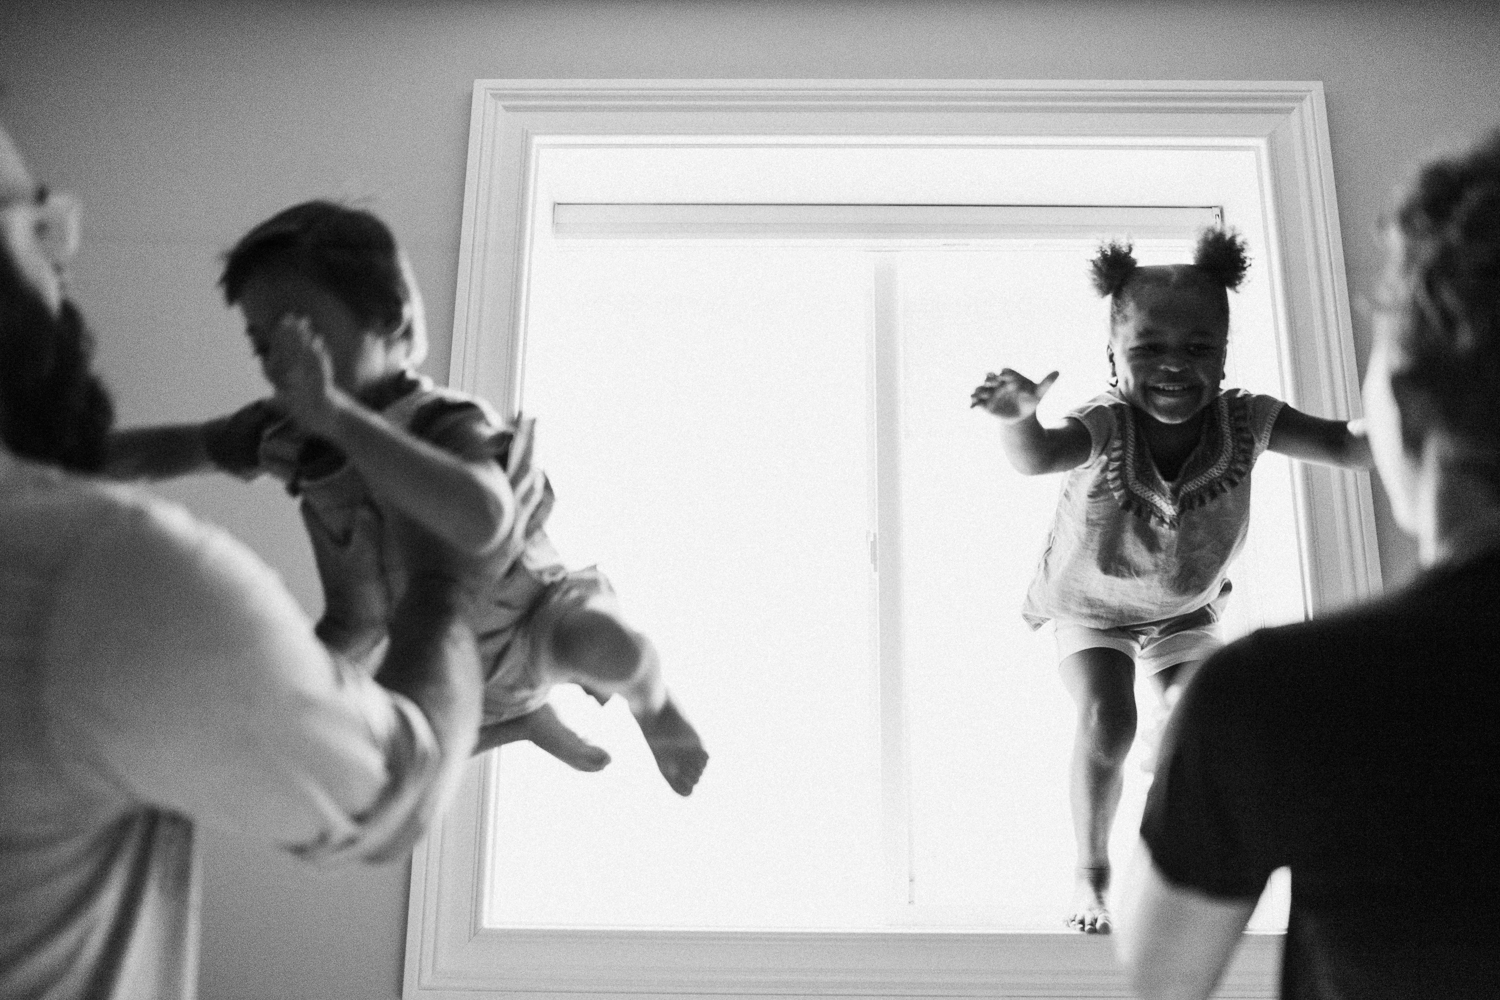 natural-and-artistic-black-and-white-photo-of-brother-and-sister-jumping-off-window-sill-into-parents-arms-salt-lake-utah